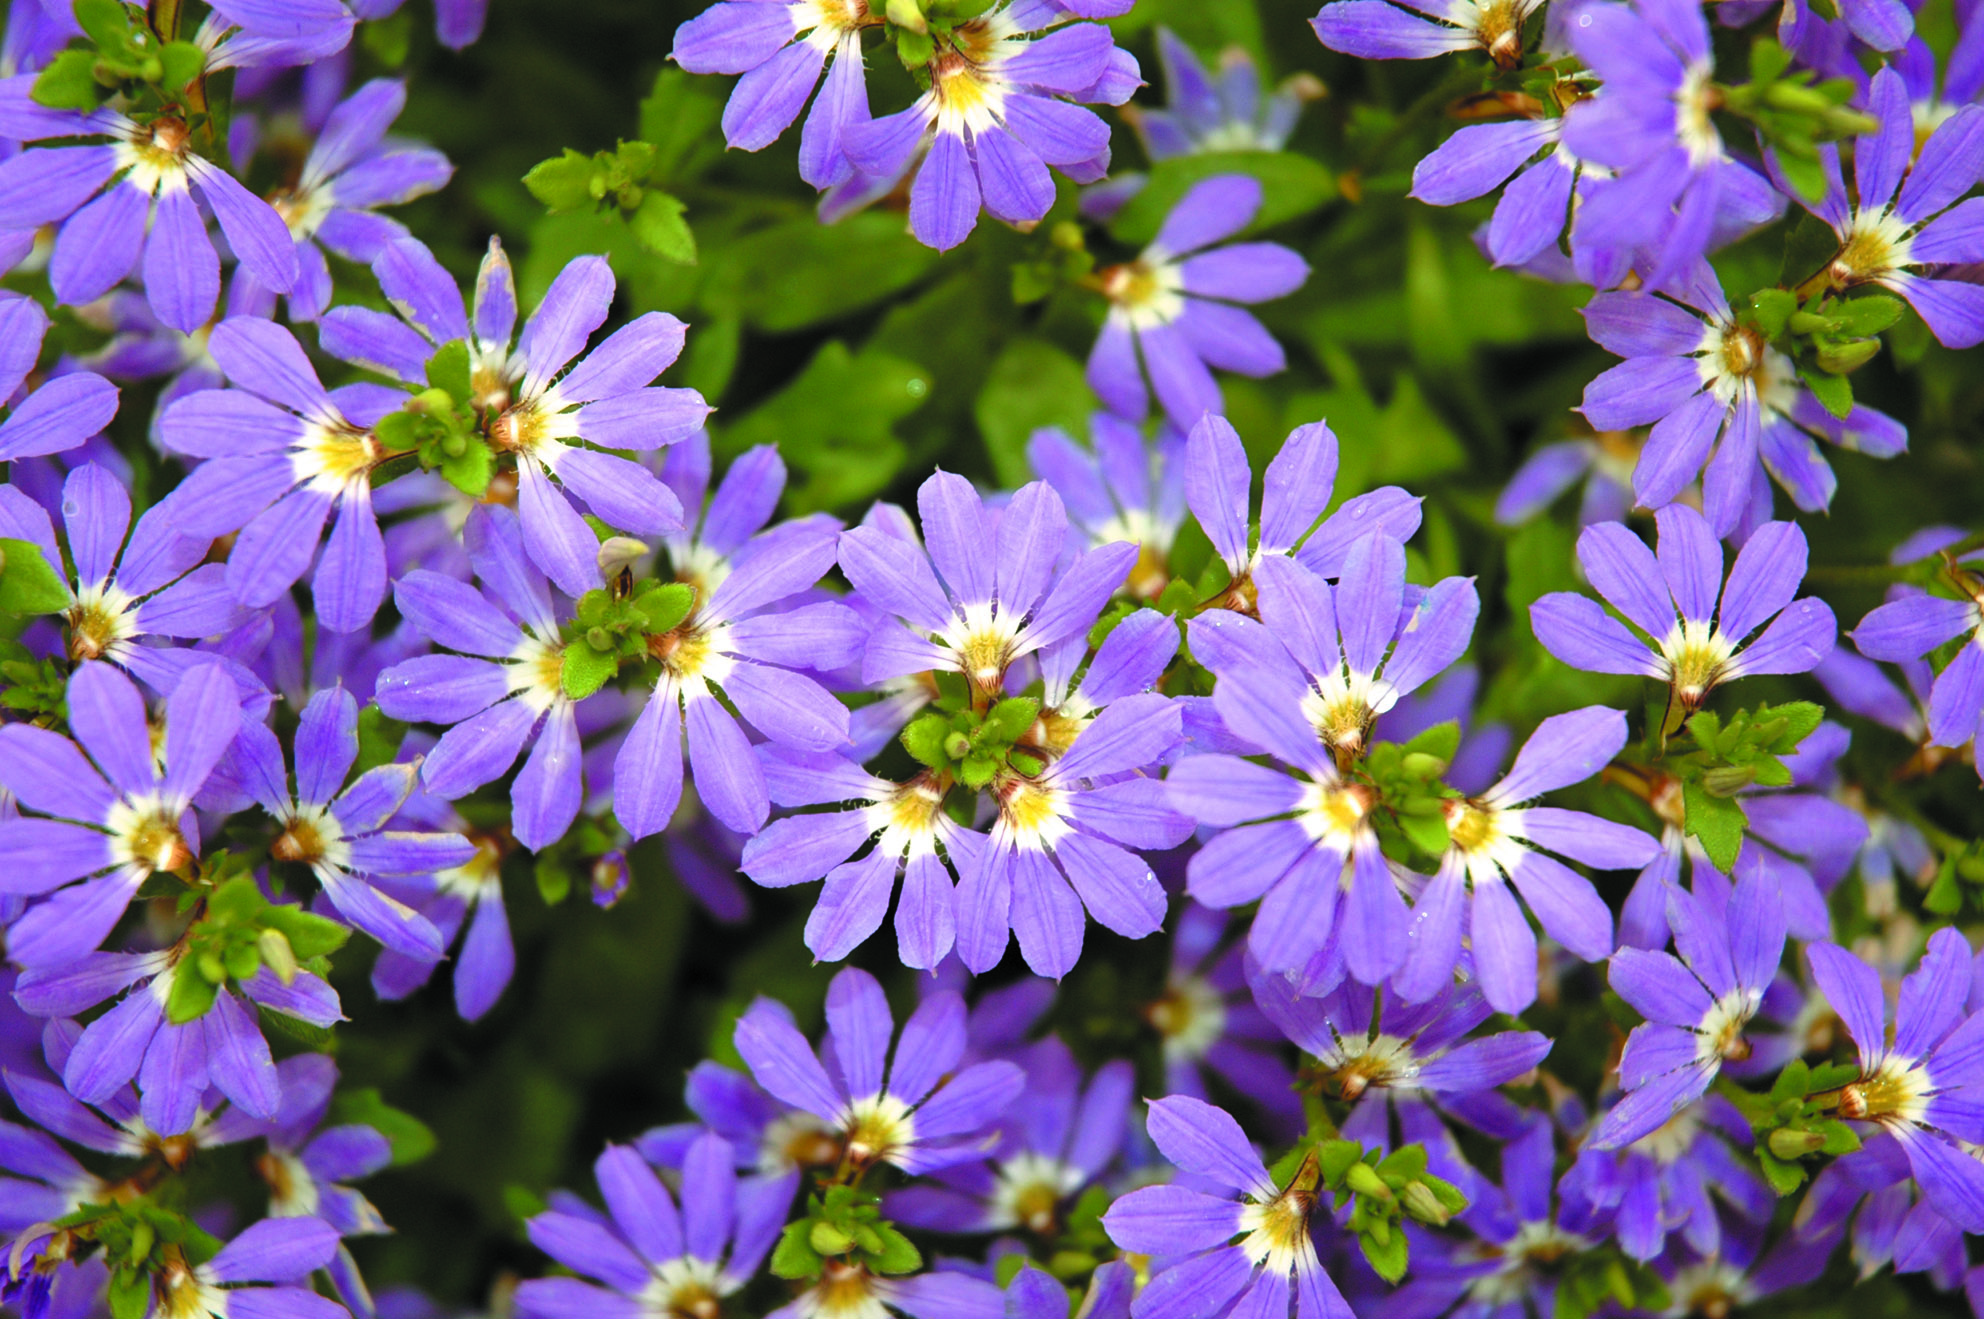 Blue Flowers Australia Scaevola Aussie Crawl Common Name Blue Fan Flowers